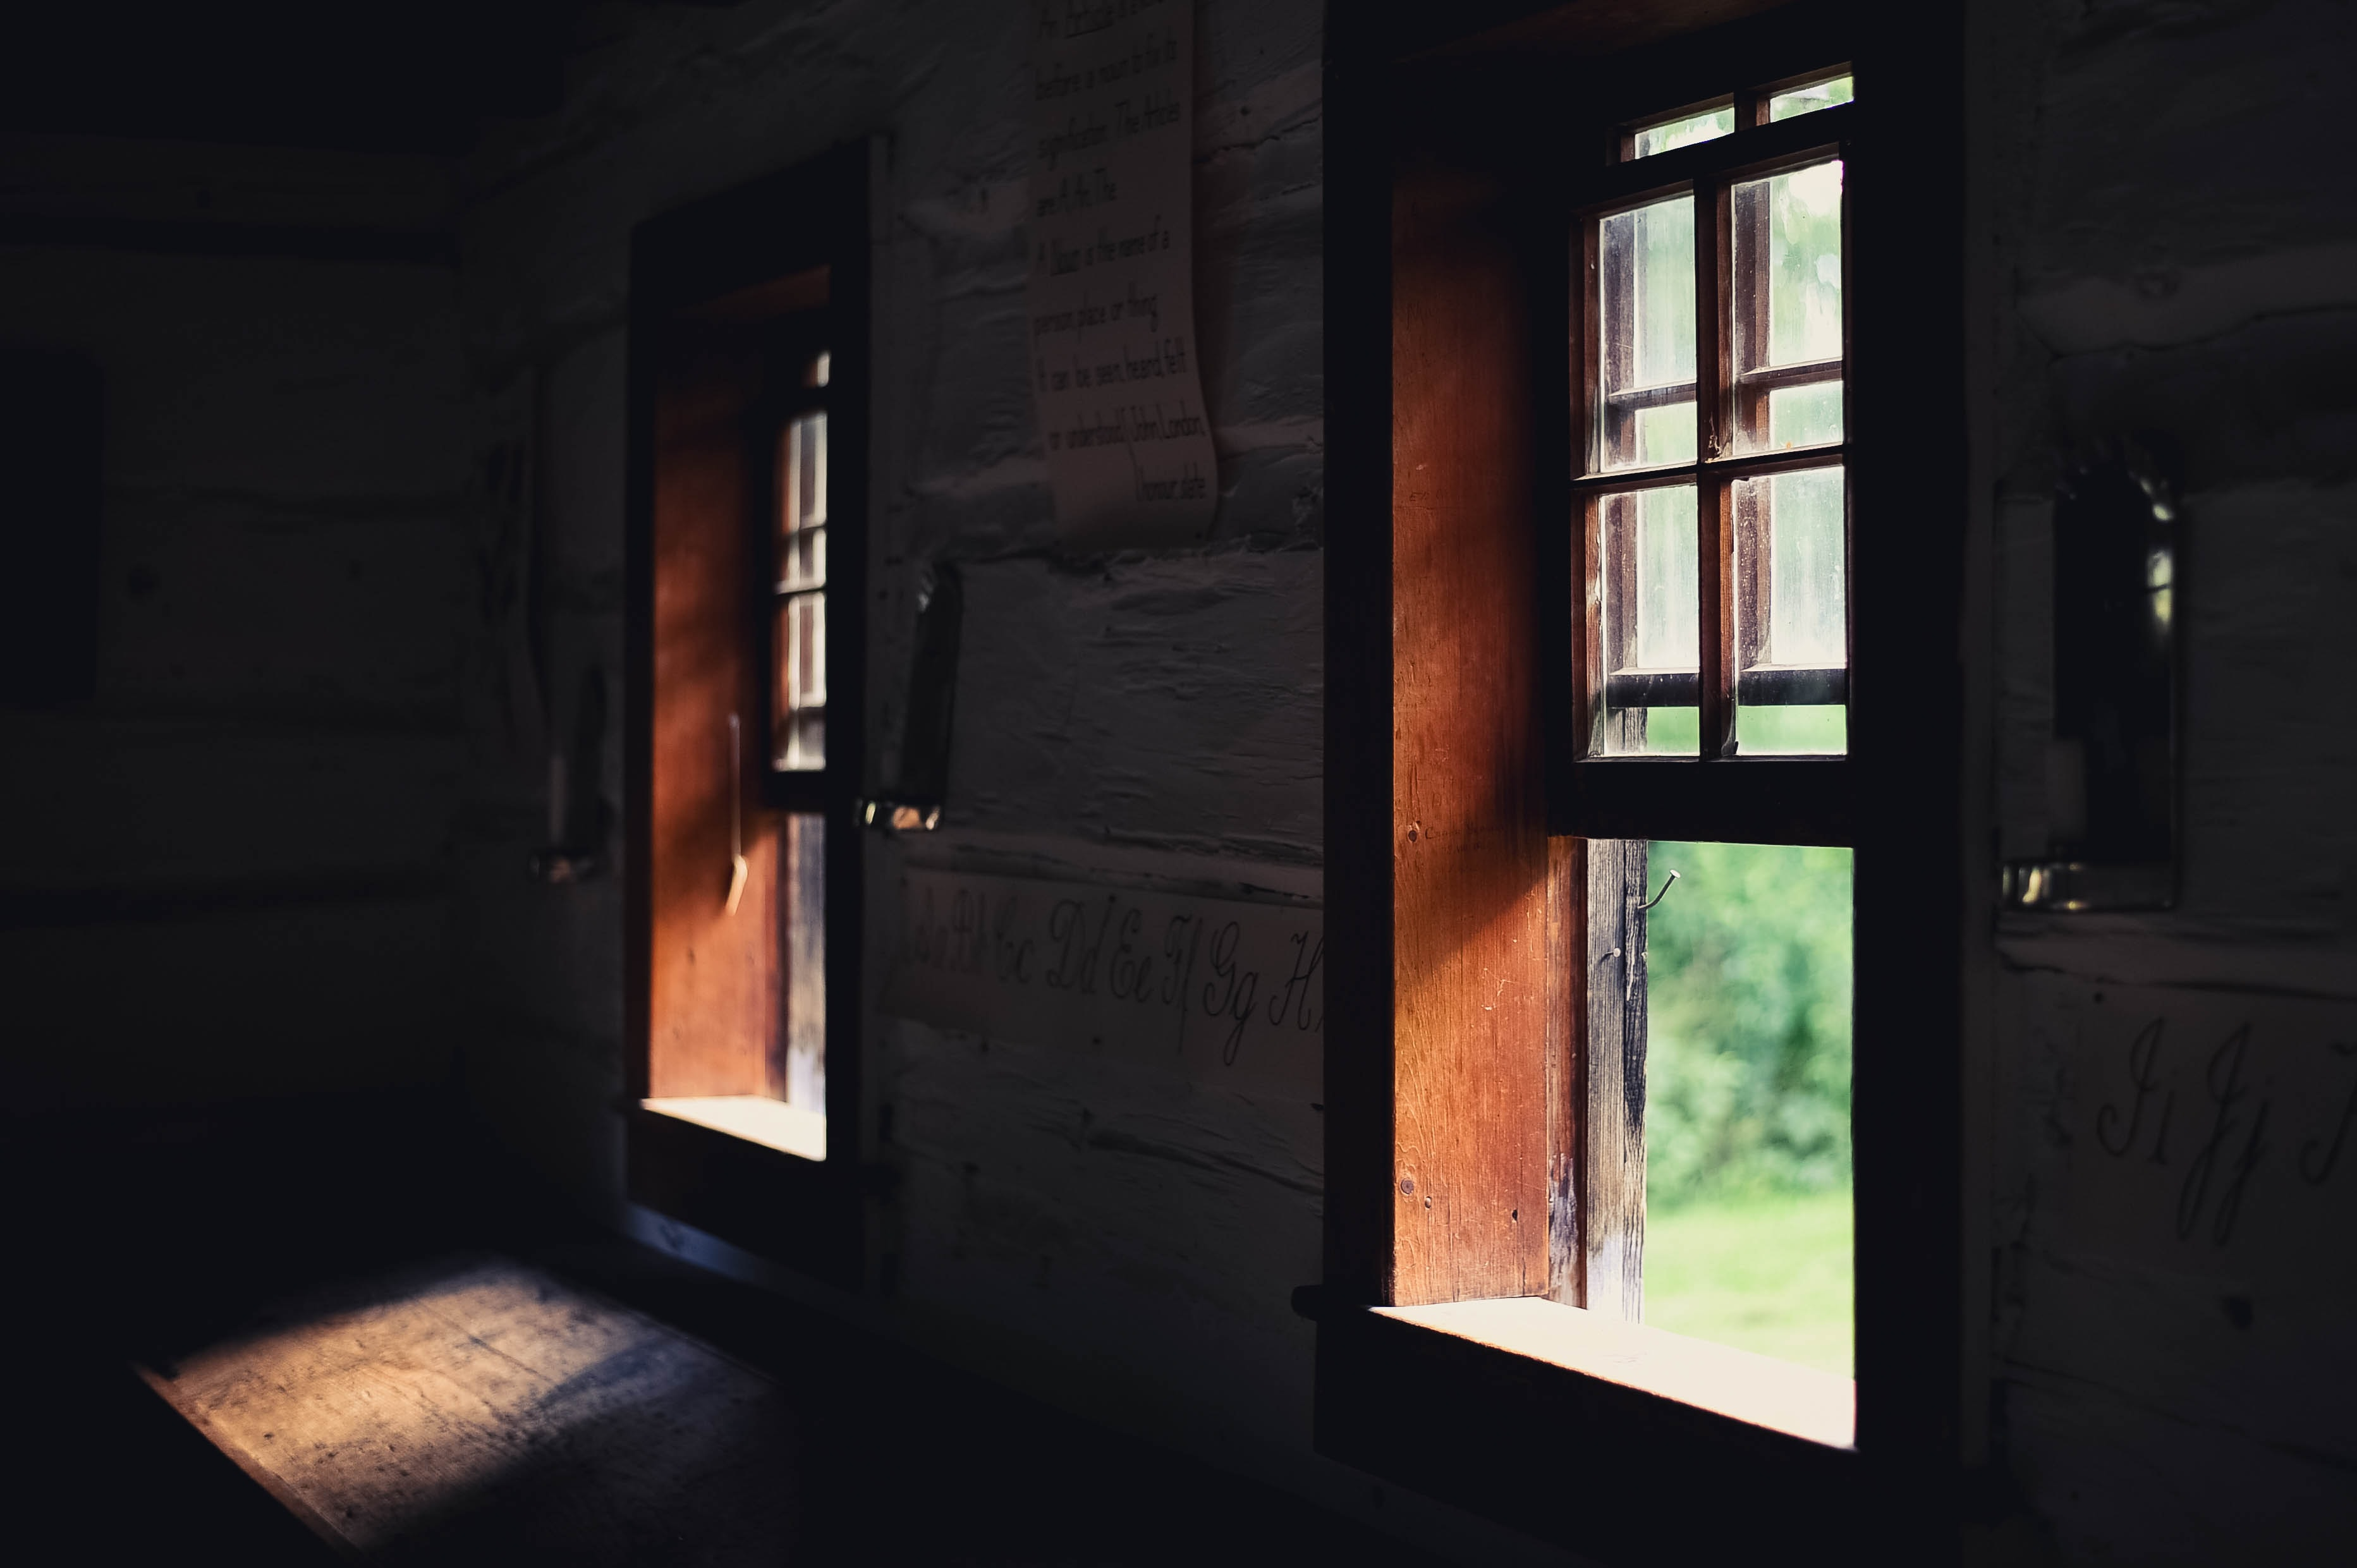 A dim shot inside an old building with sunlight coming in through open wooden windows